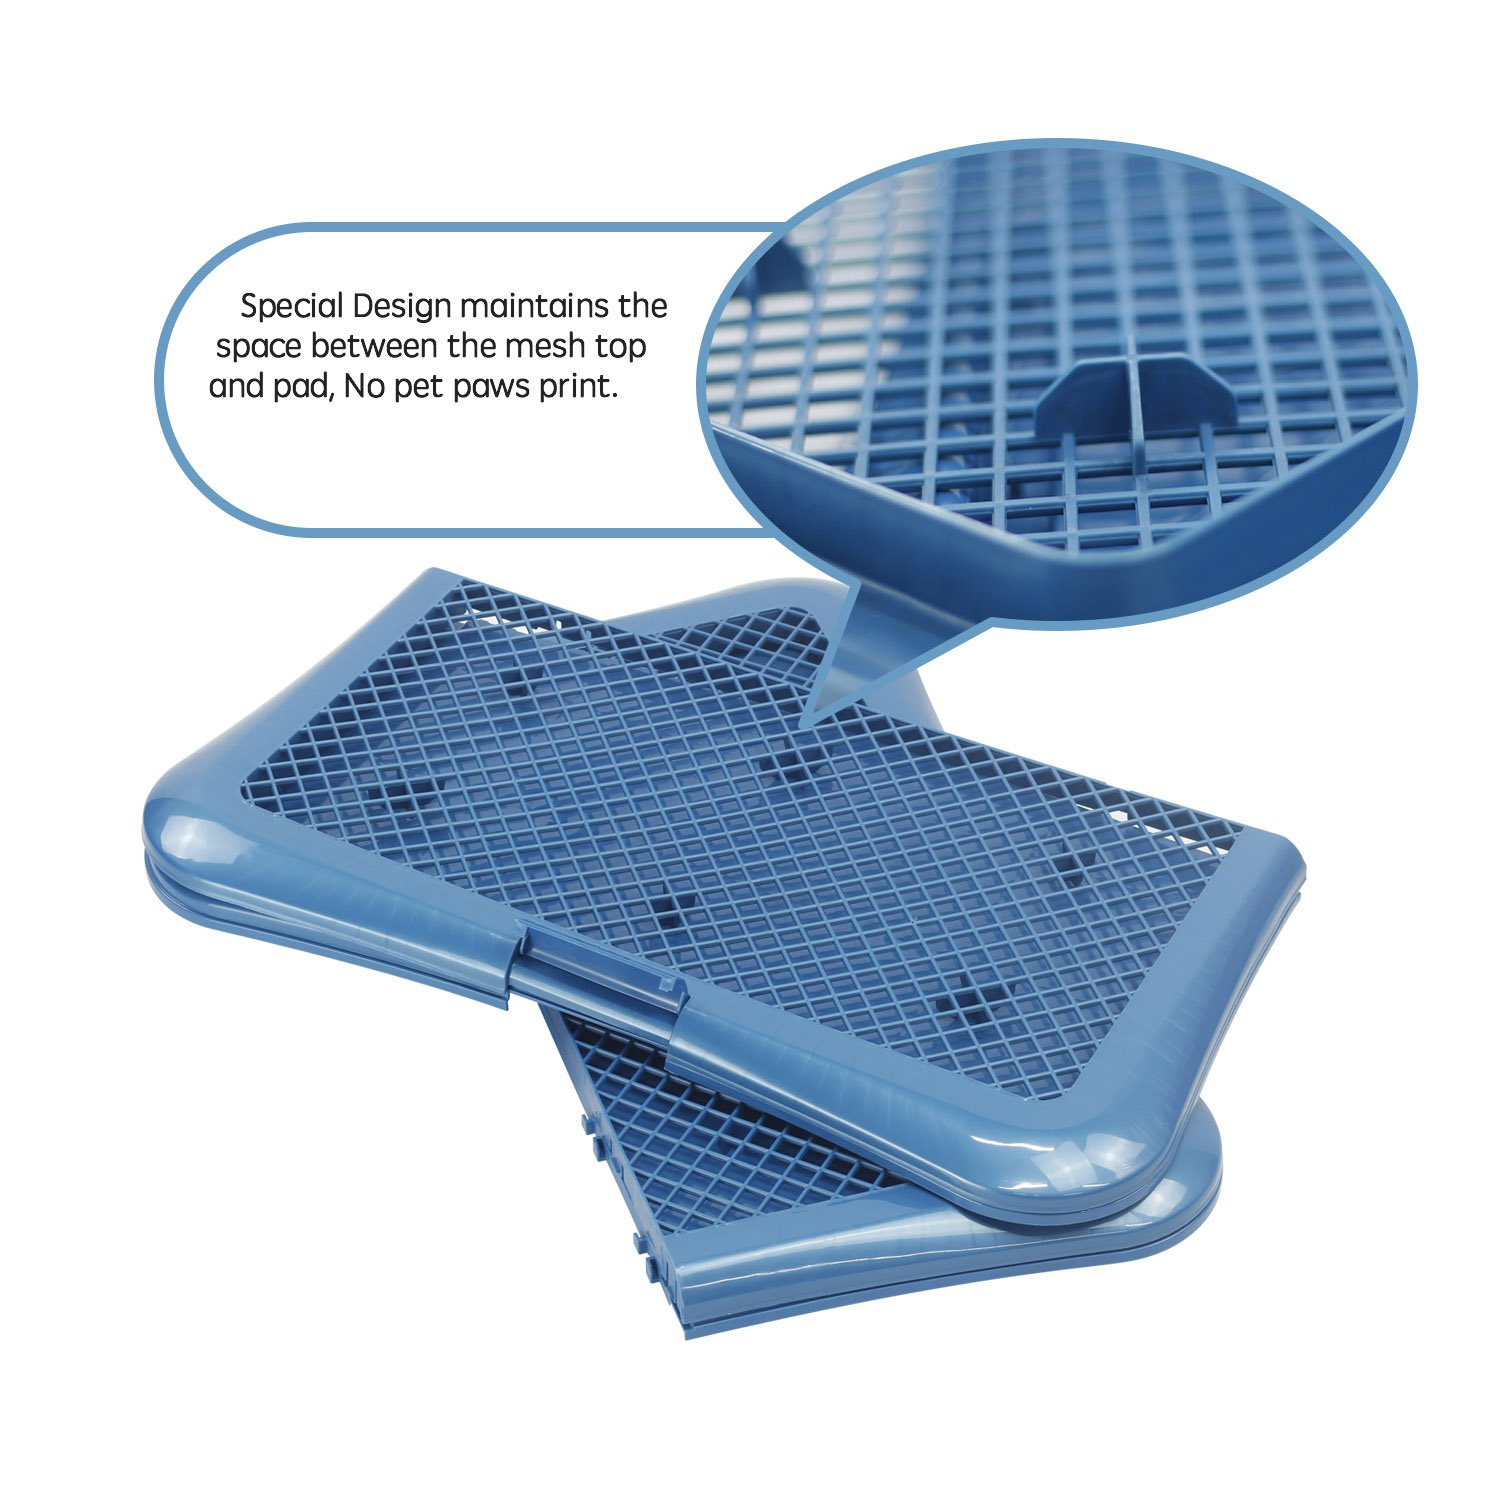 Petphabet Training Pad holder Floor Protection Dog Pad Holder Mesh Training Tray (L) by Petphabet (Image #6)